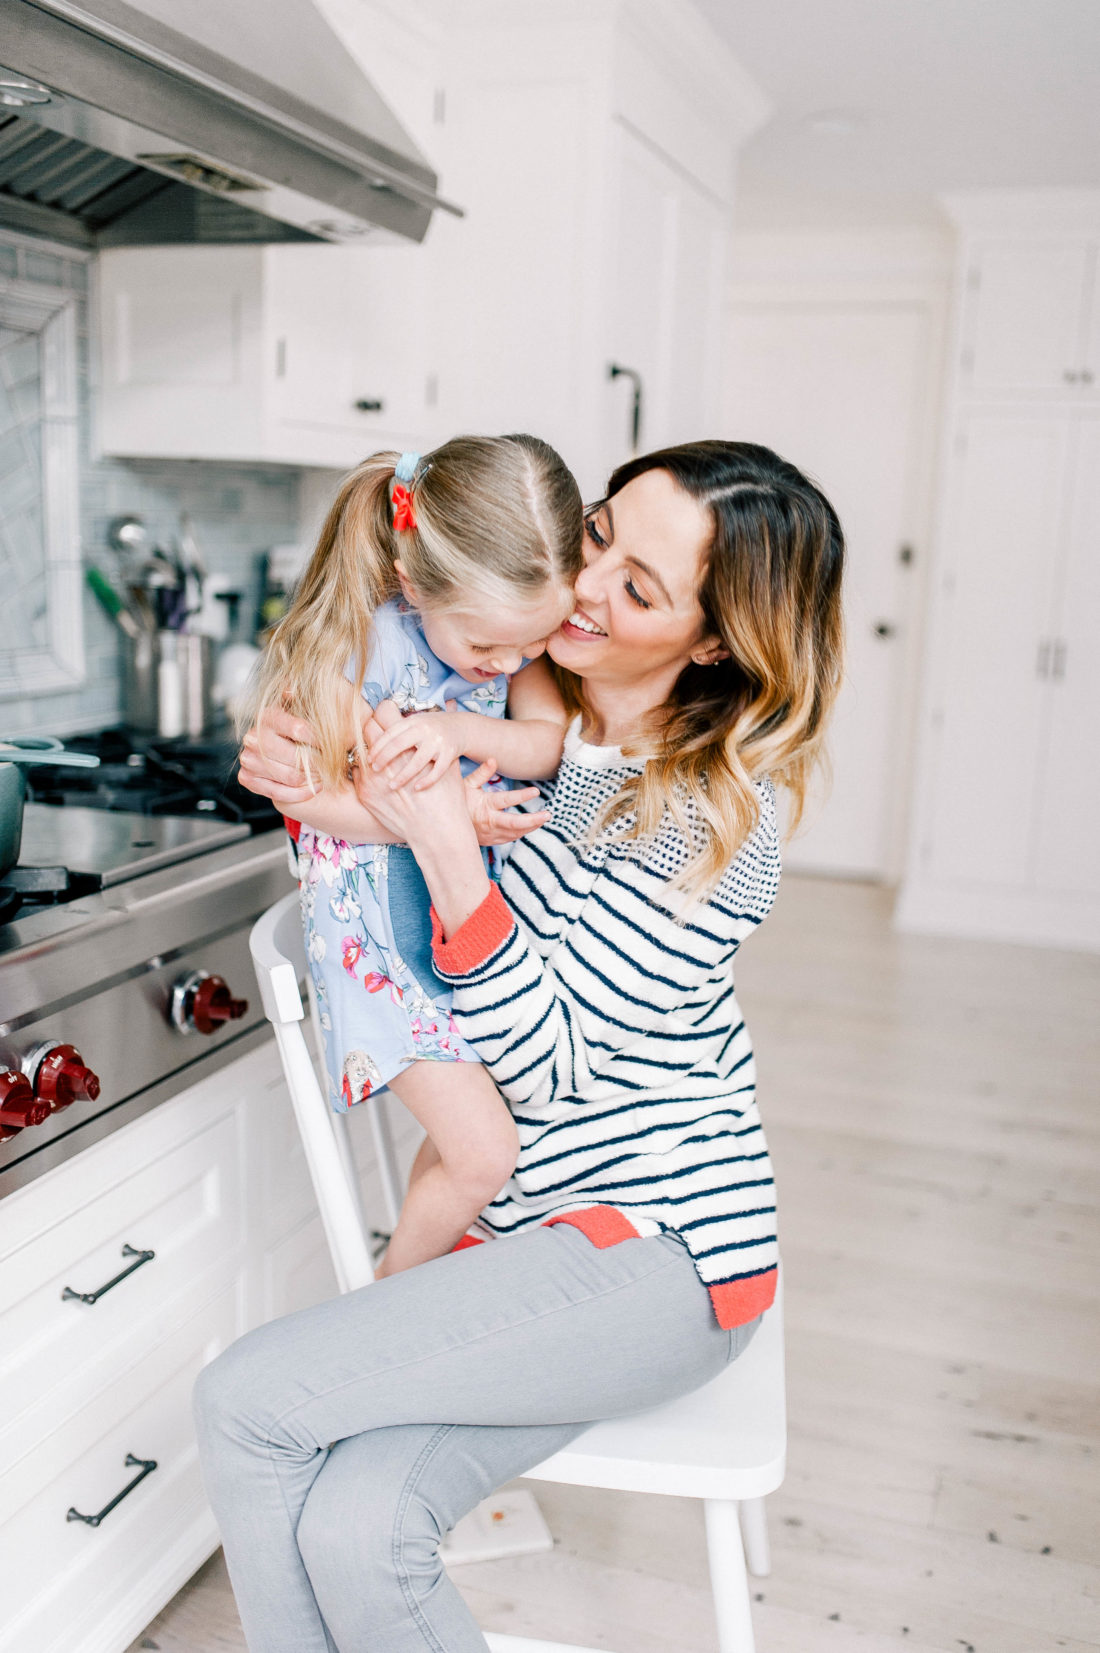 Eva Amurri Martino and Marlowe Martino laugh in the kitchen of their connecticut home